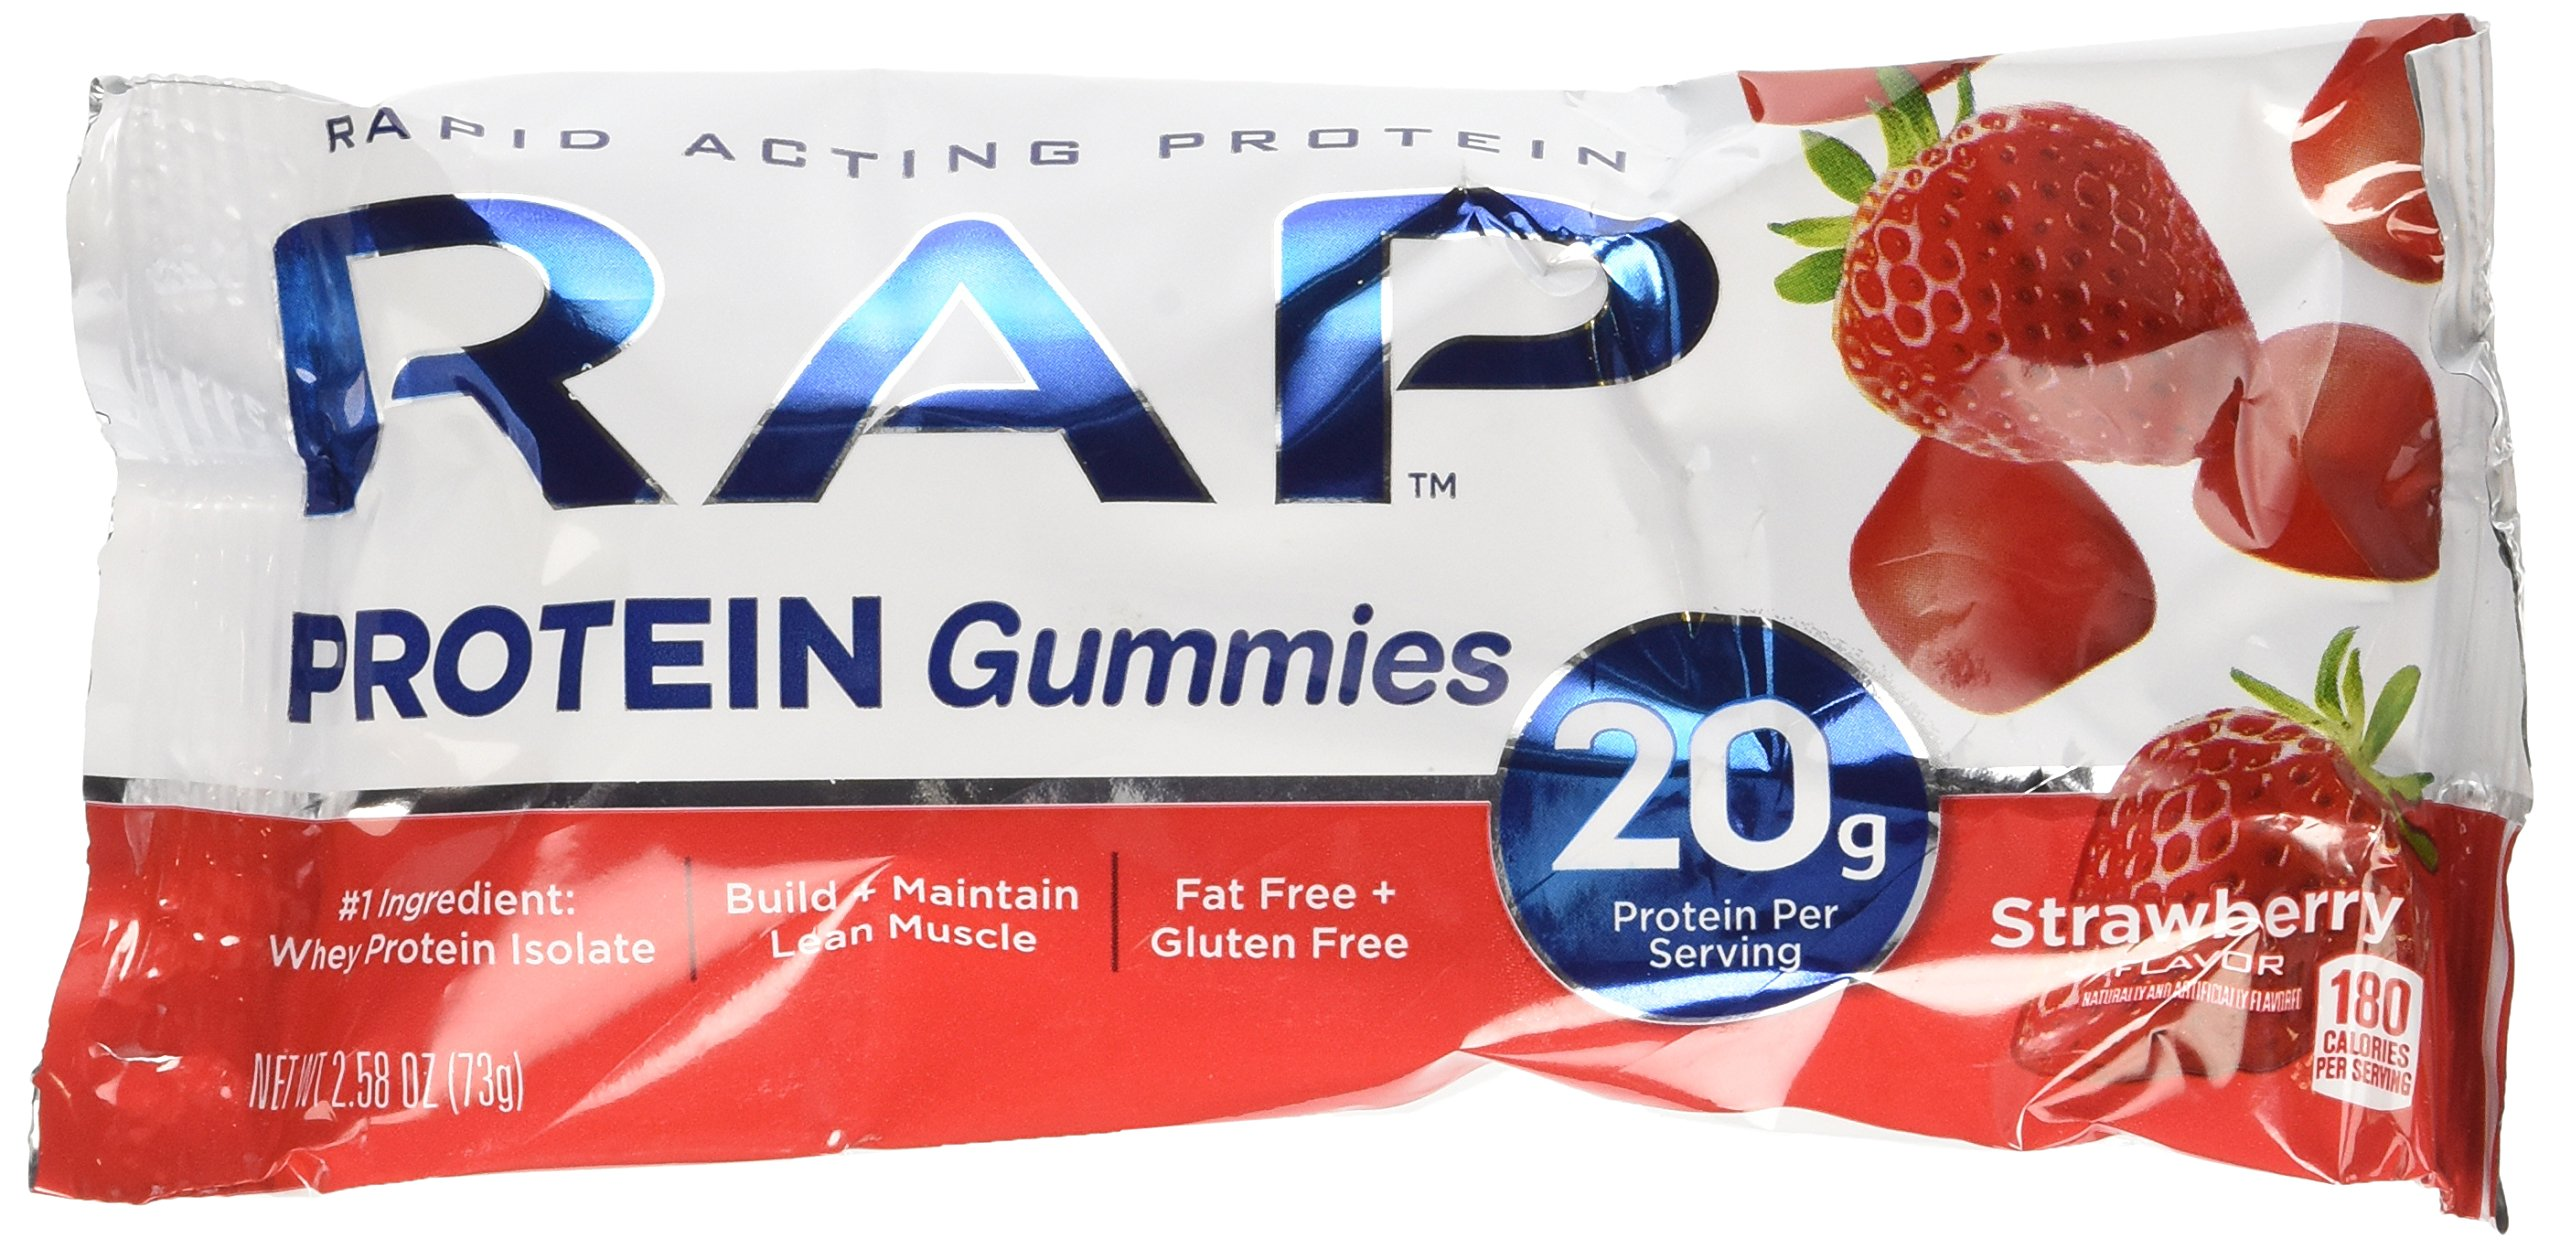 RAP Protein Gummies Strawberry Flavor pack of 12